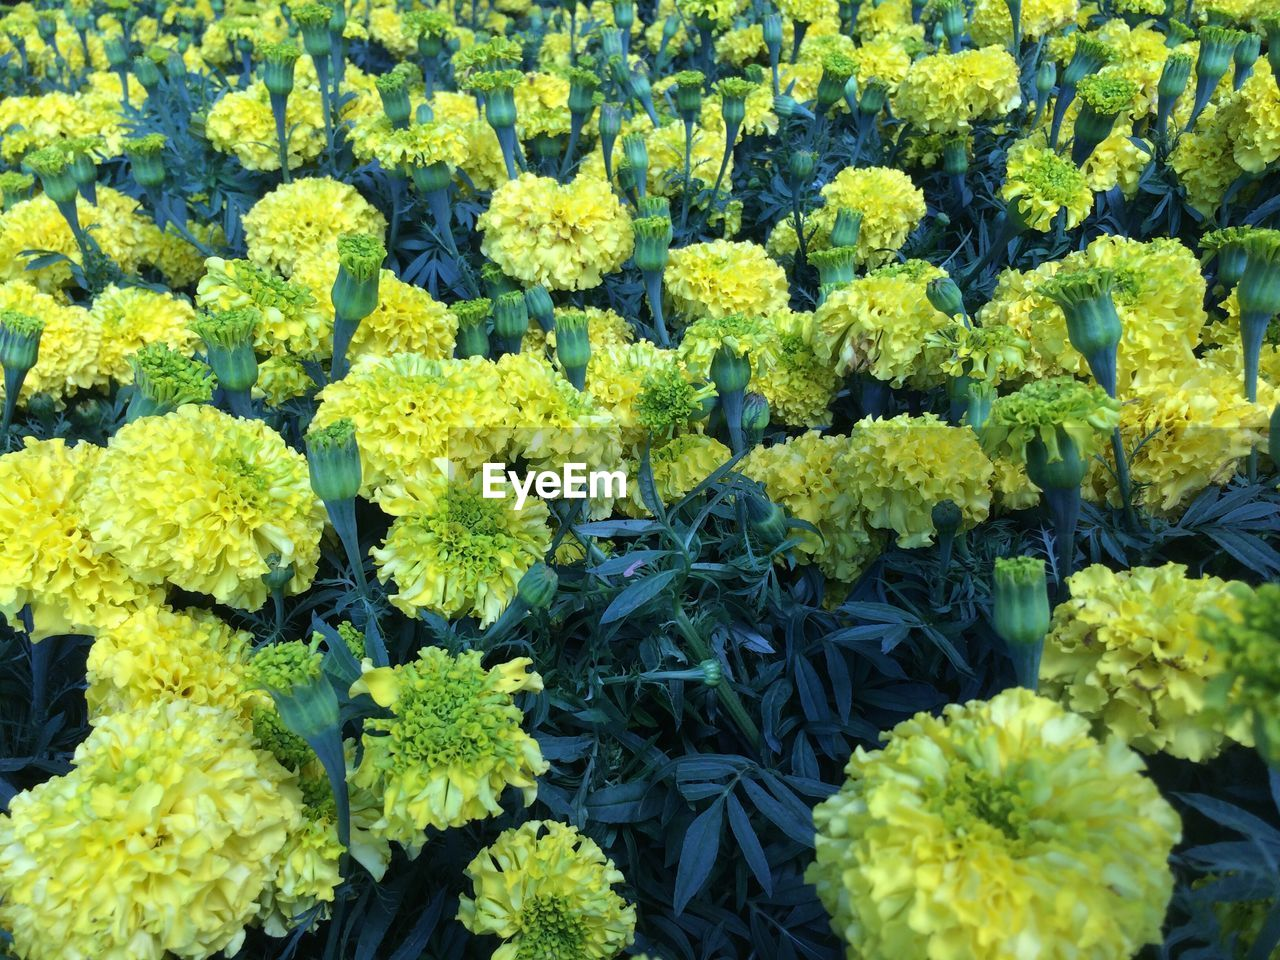 flower, freshness, growth, fragility, nature, abundance, yellow, plant, in a row, vibrant color, variation, beauty in nature, vegetable, agriculture, full frame, backgrounds, market, leaf, green color, retail, flower head, no people, springtime, day, multi colored, flowerbed, outdoors, marigold, close-up, flower market